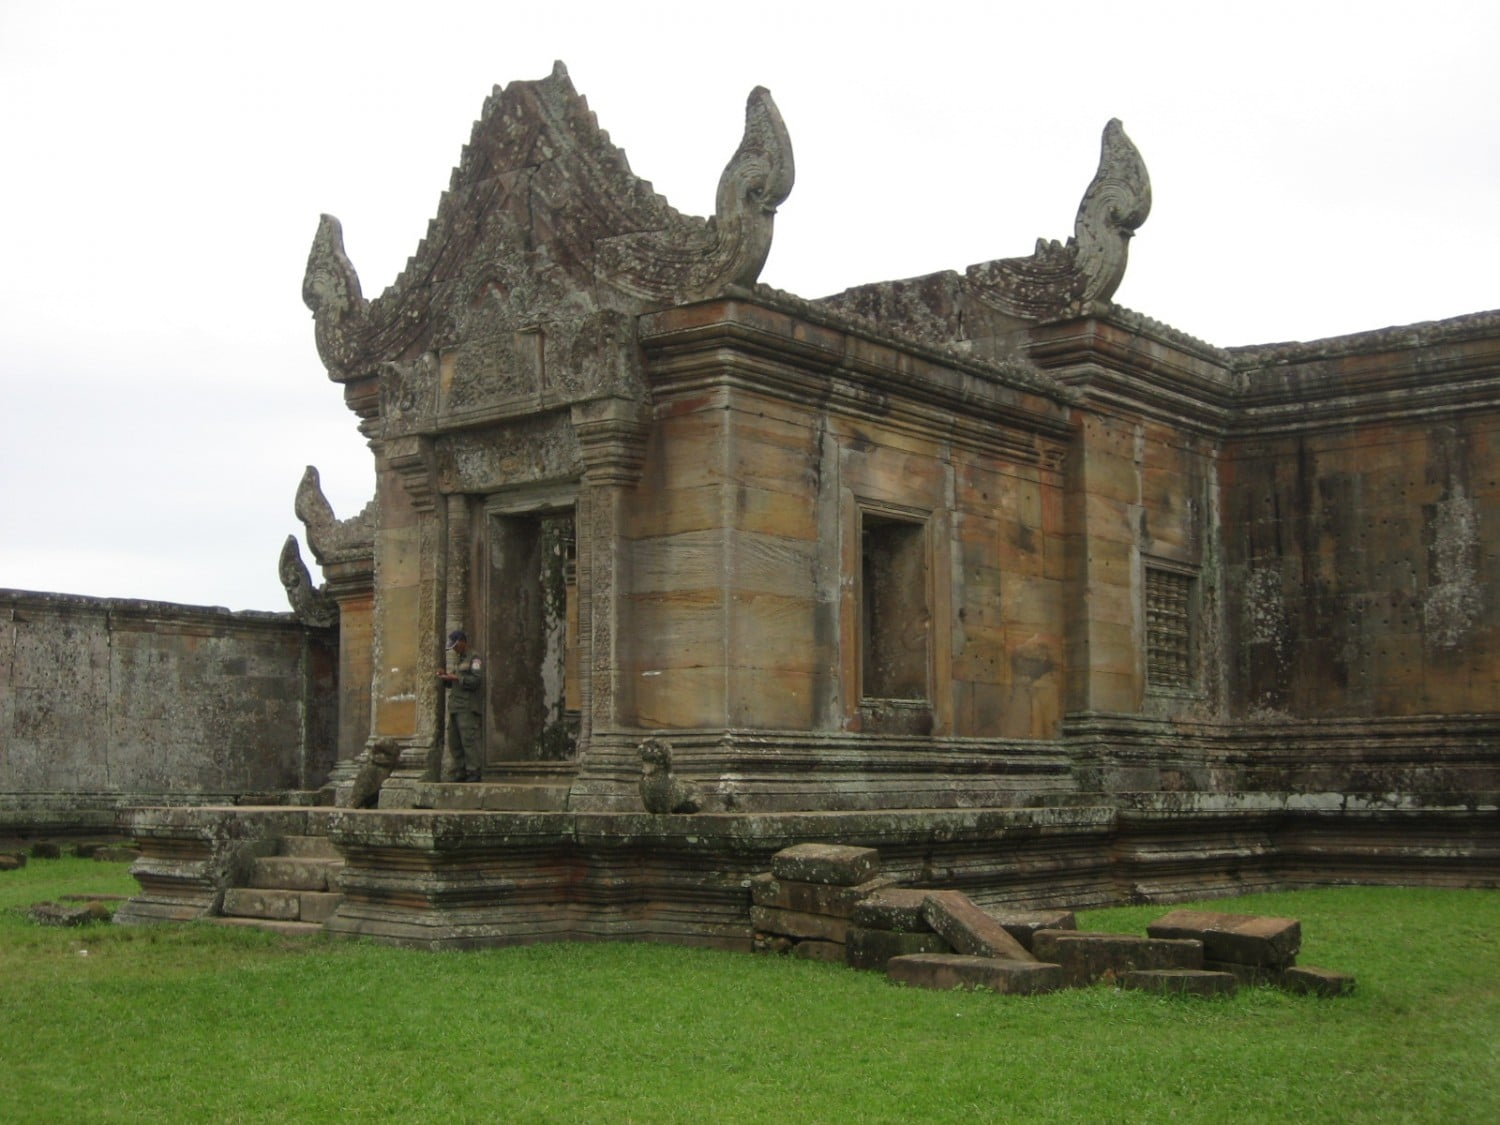 Preah Vihear. Four awesome Southeast Asia travel itineraries I Photography I Itinerary I Landscape I Food I Architecture I Laos I Thailand I Cambodia I Myanmar I Malaysia I Vietnam. Read the full travel guide now #travel #backpacking